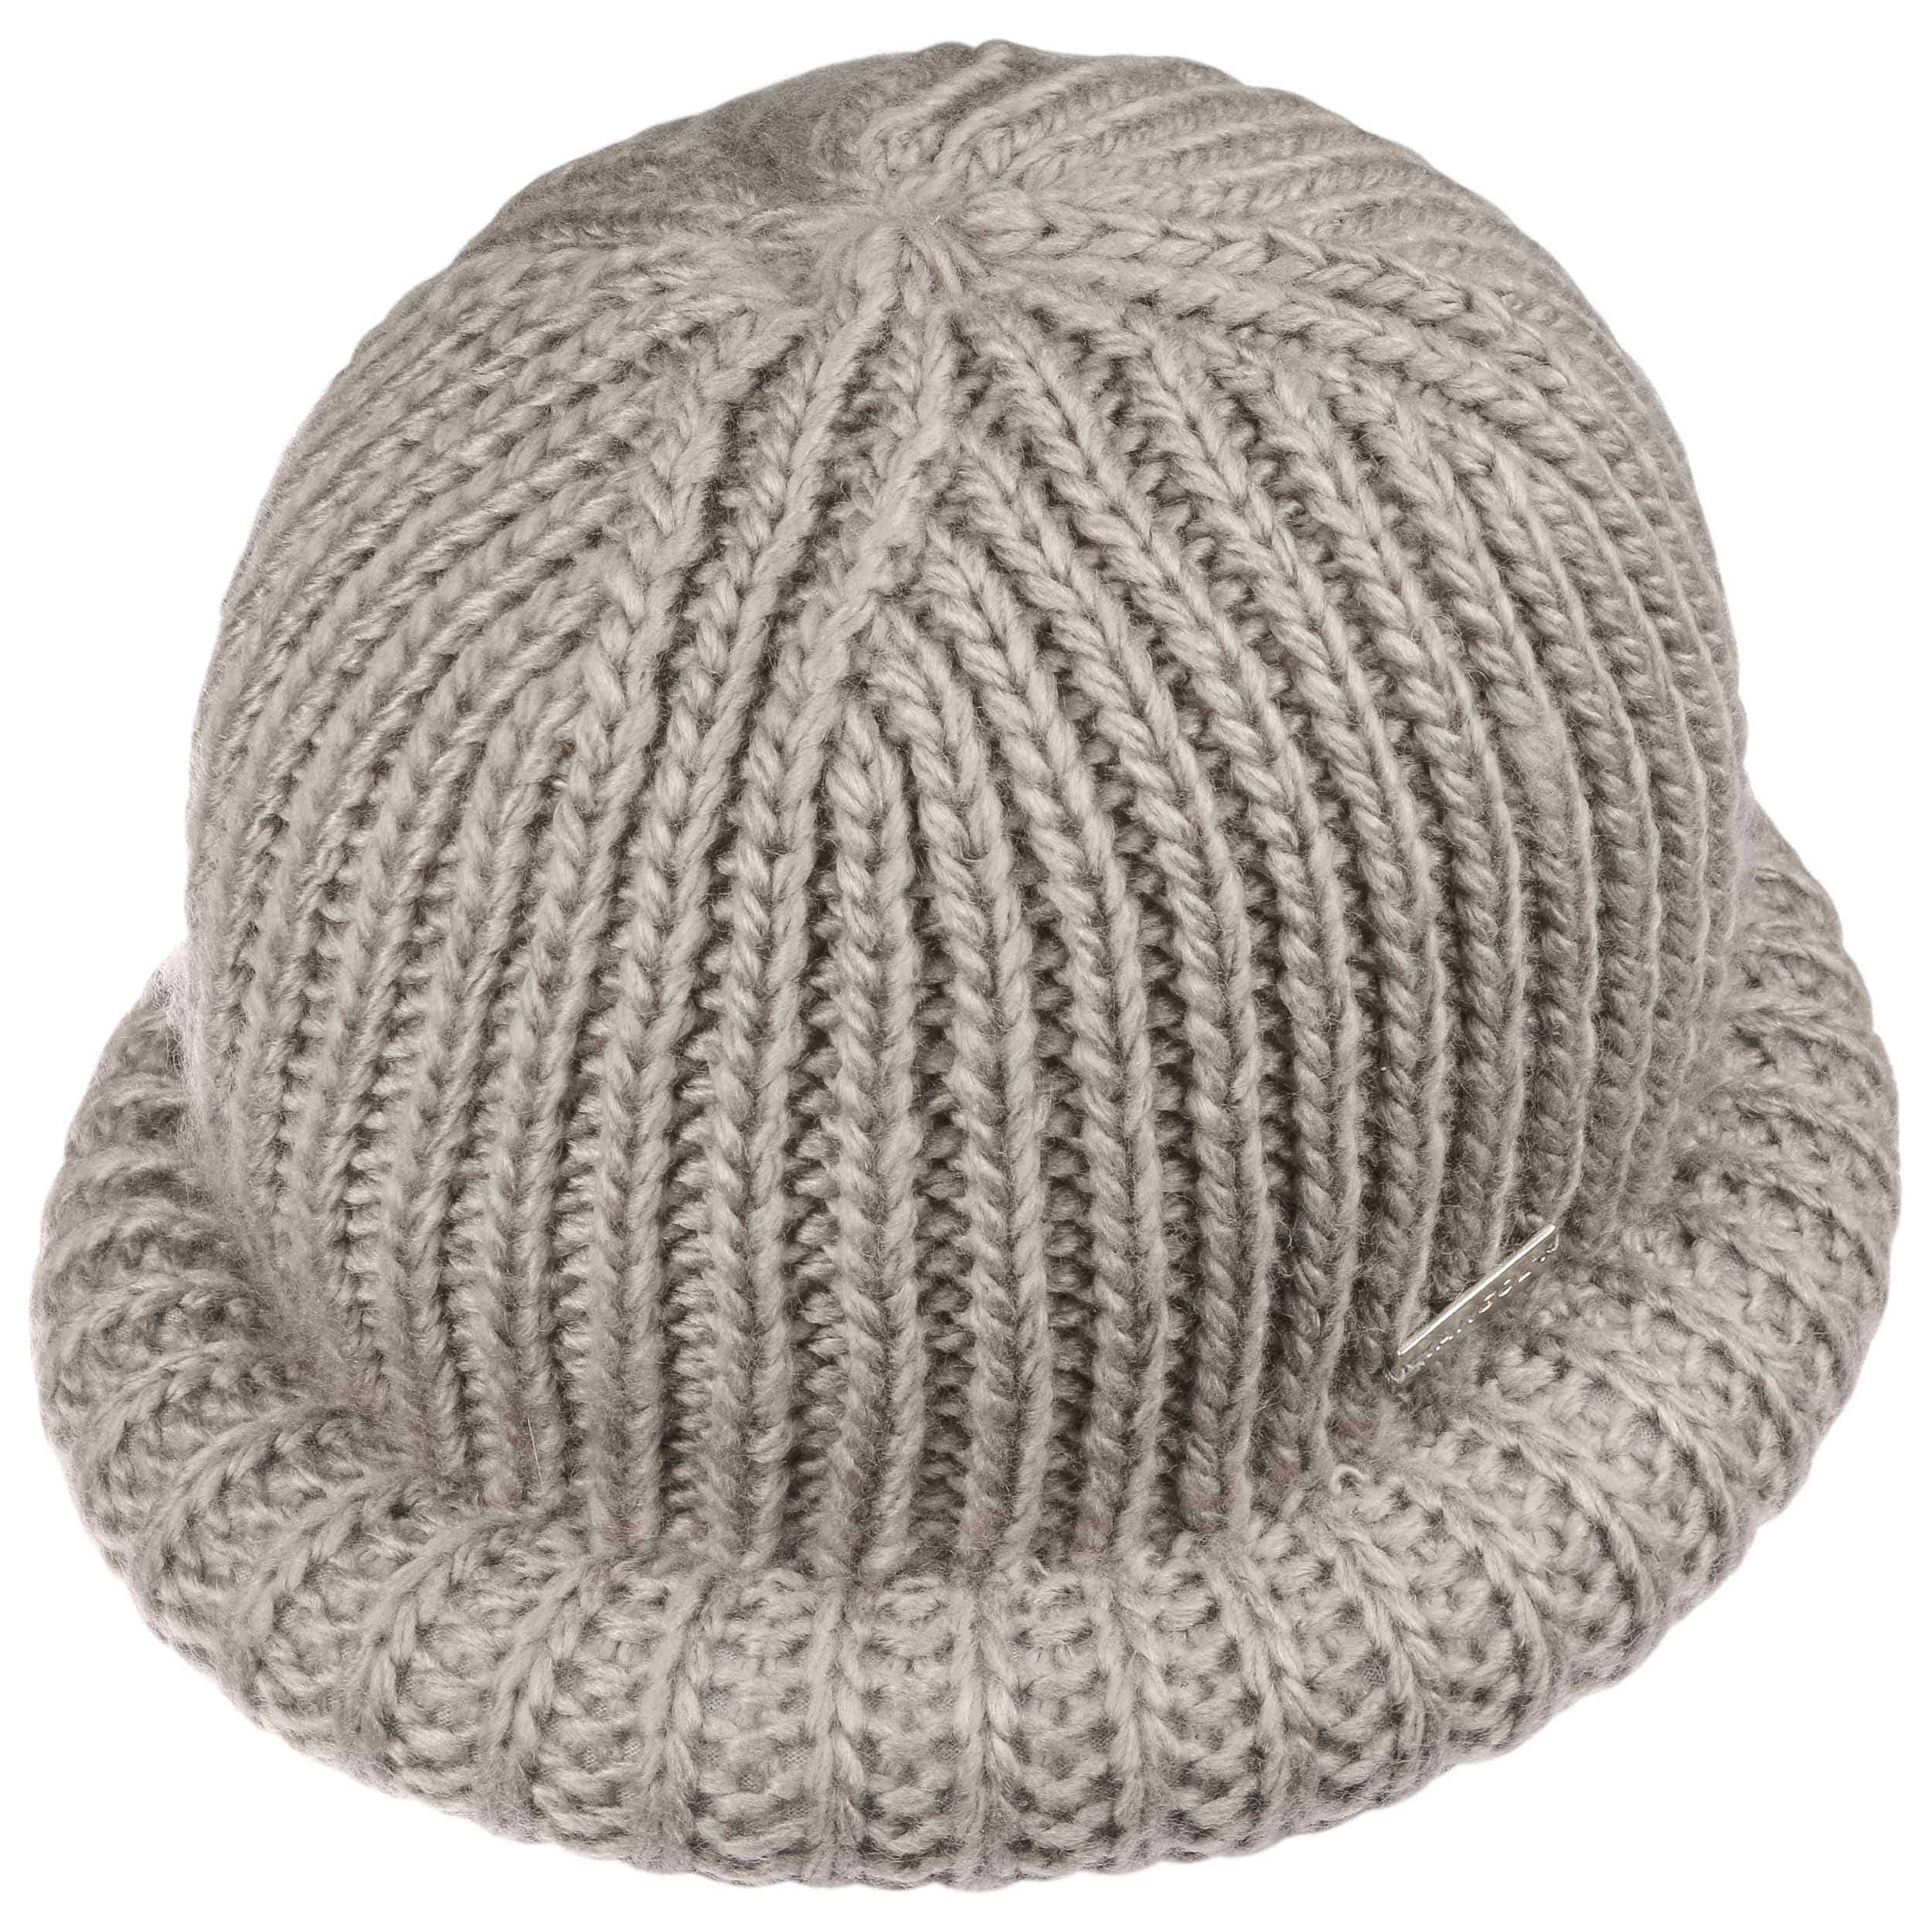 88001d4ea96b7 Rolled Beanie Hat by Kangol - grey 1 ...